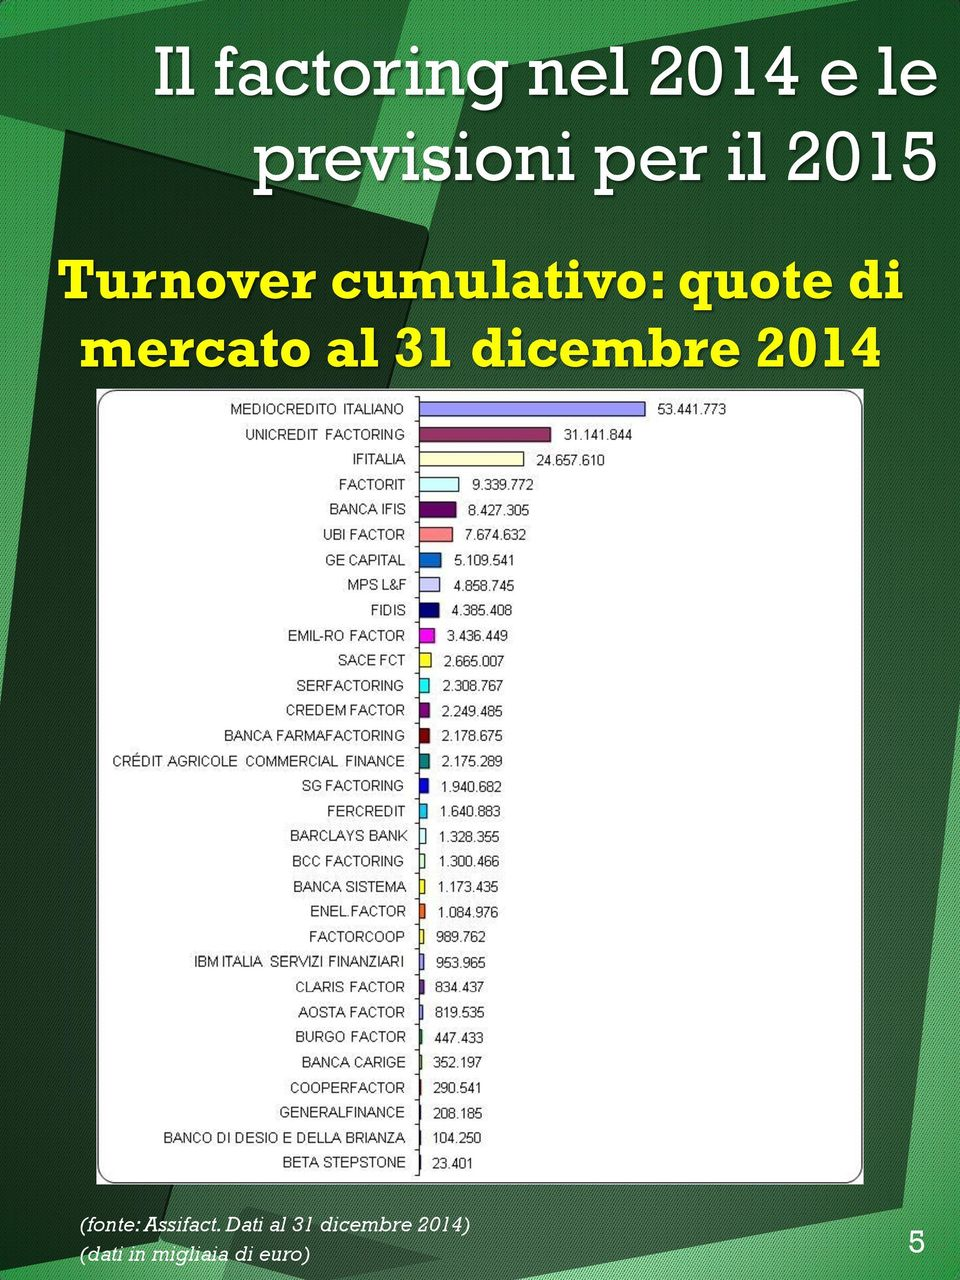 al 31 dicembre 2014 (fonte: Assifact.